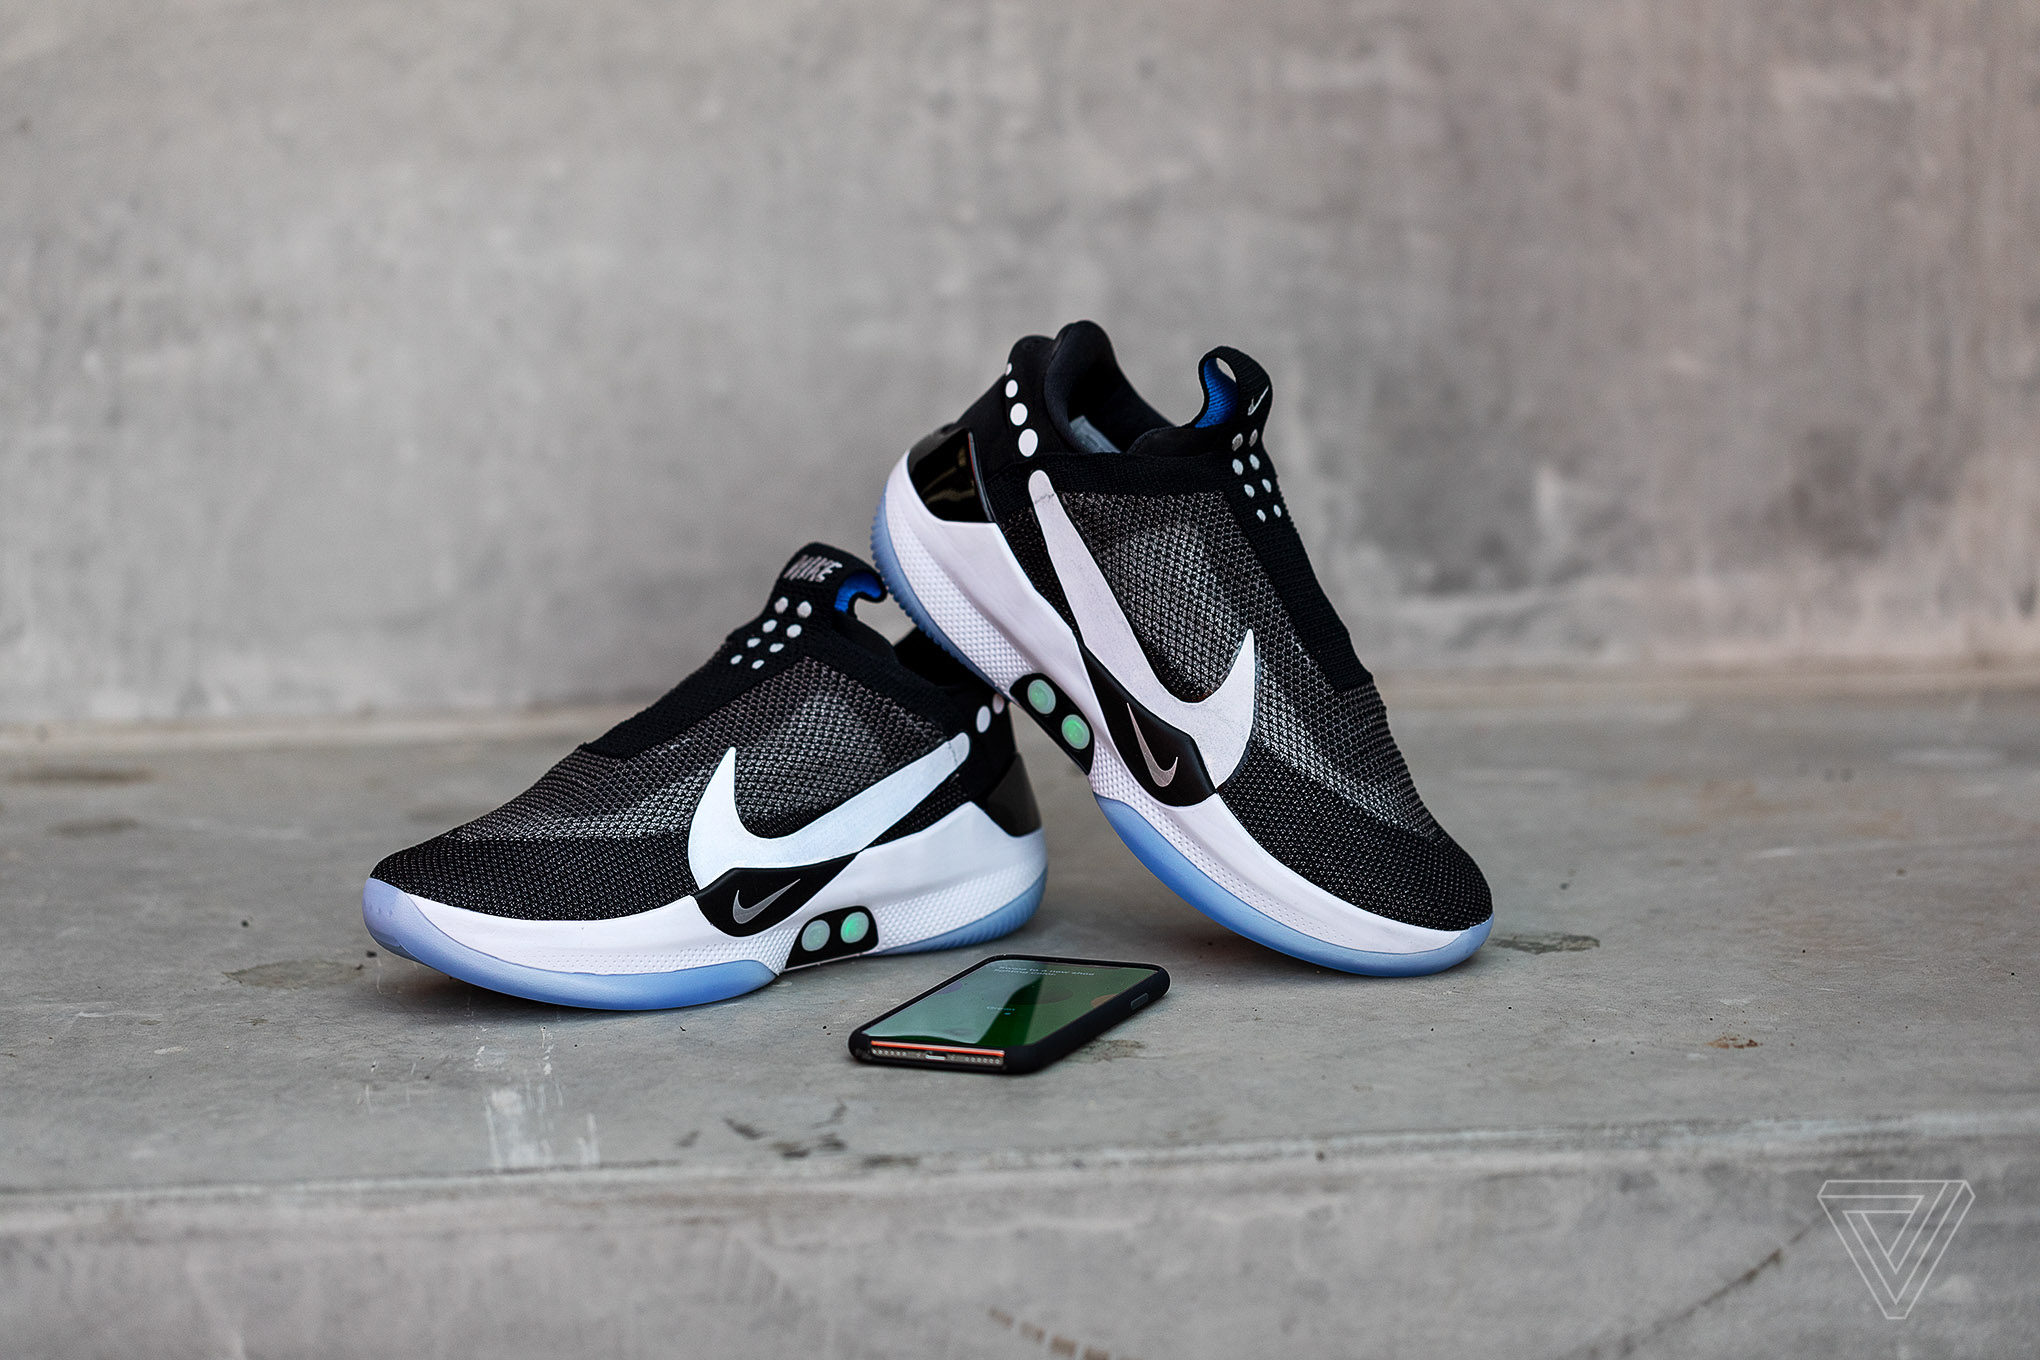 bad1e08f1fbc95 Nike s Adapt BB self-lacing sneakers let you tie your shoes from an ...